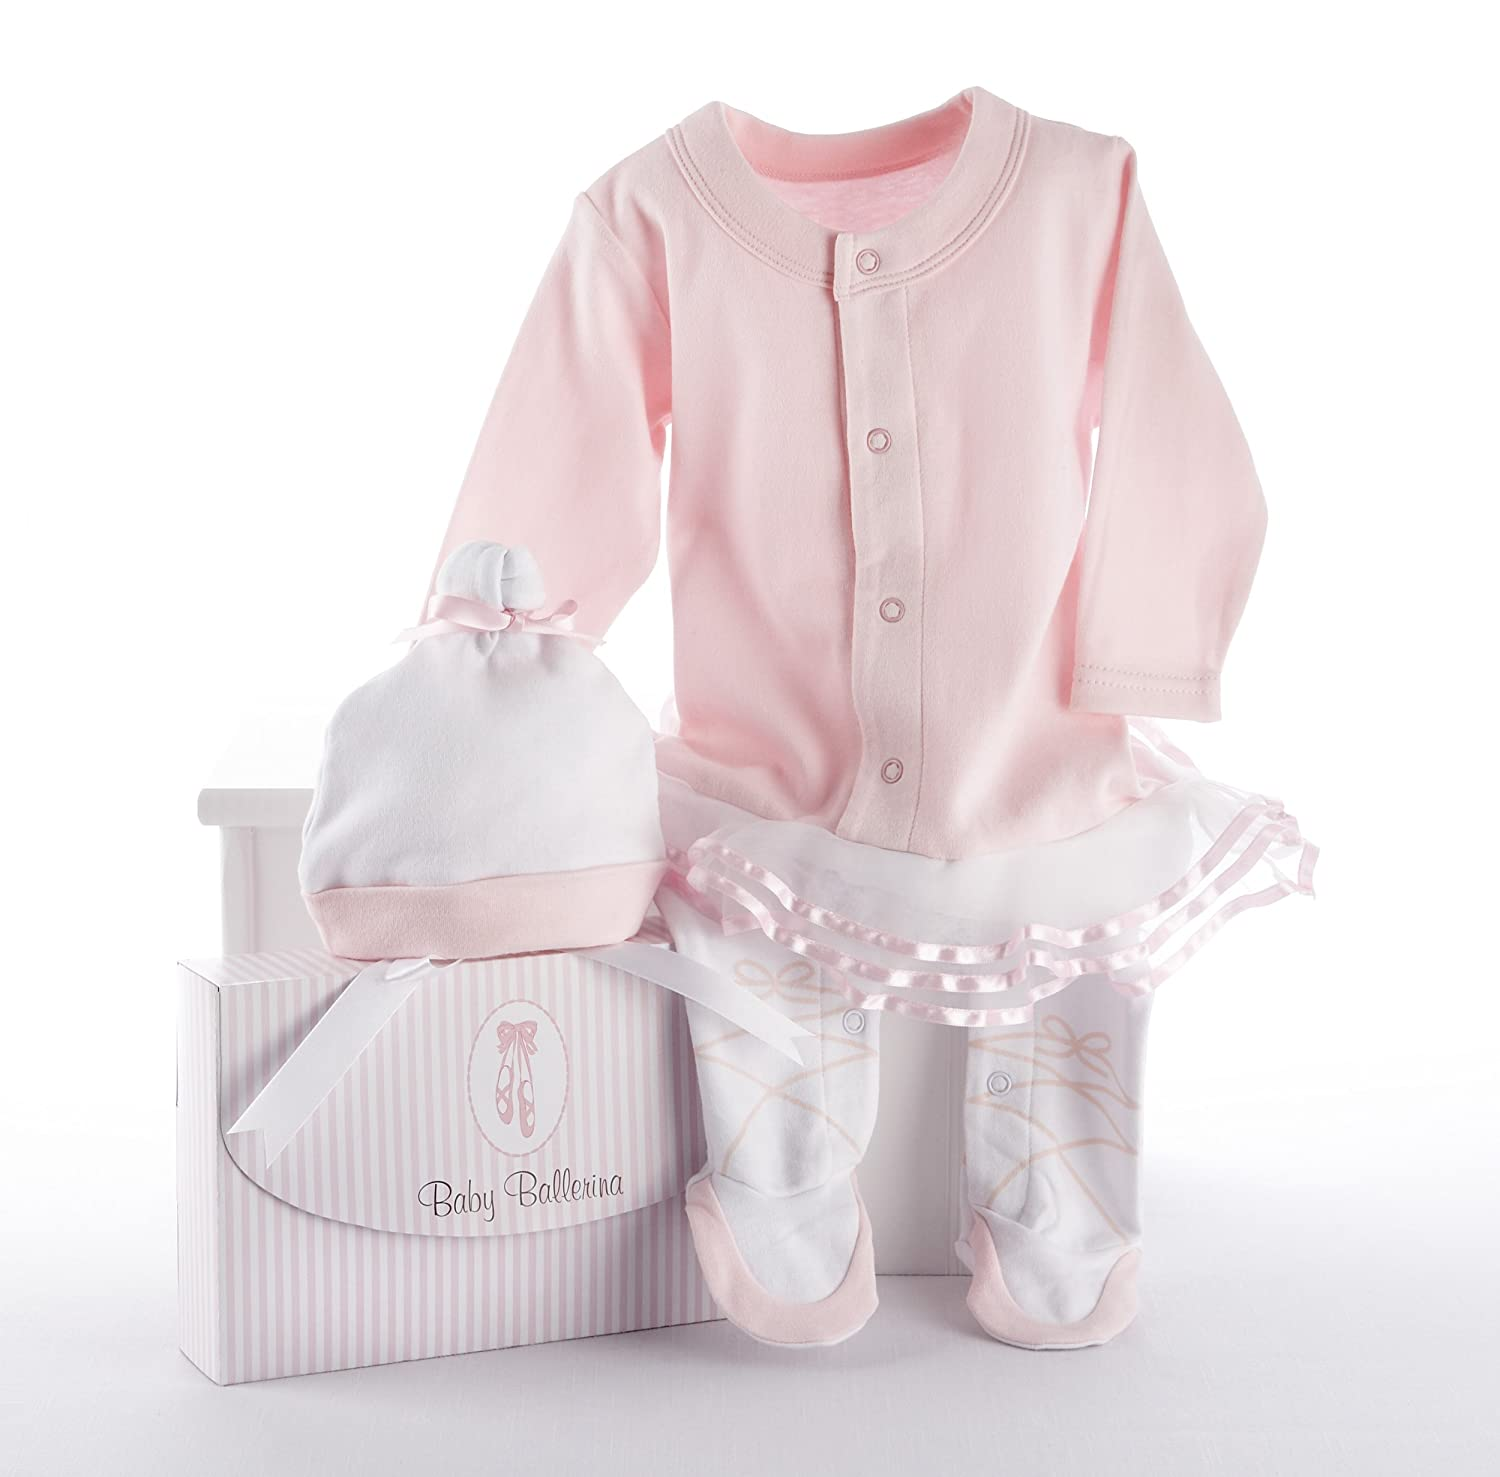 Baby Aspen Big Dreamzzz Baby Chef Layette Set with Gift Box, White, 0-6 Months BA16010WT